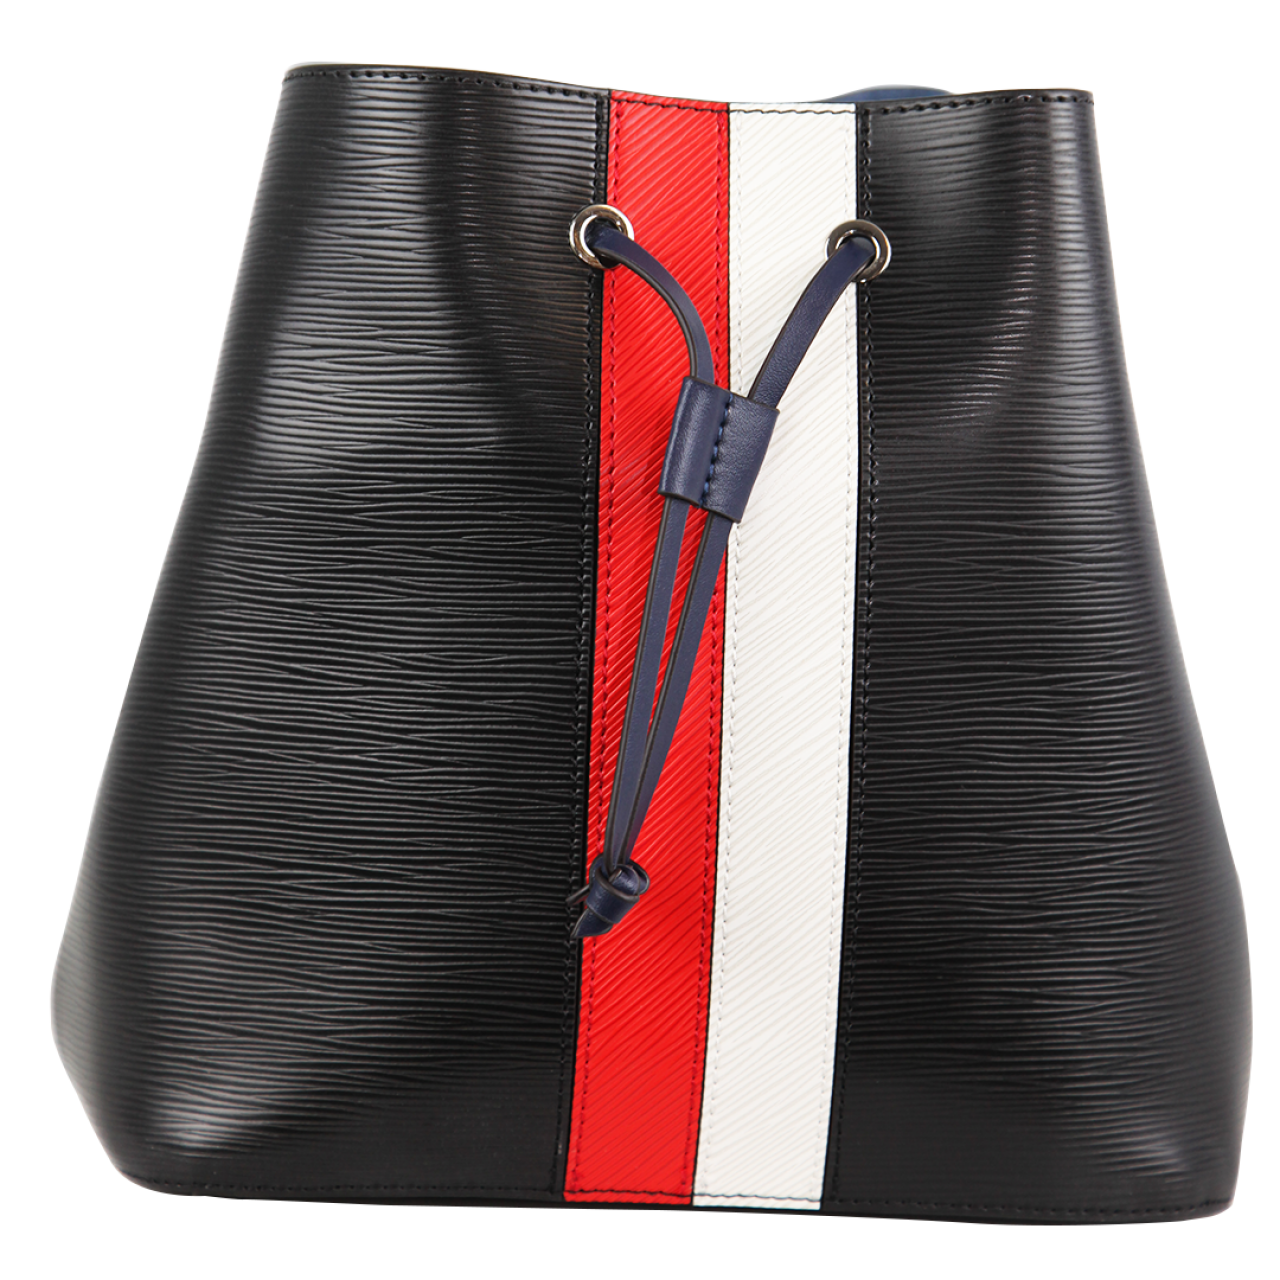 Zeekas Stylish Solid Black With Red And White Bucket Tote Sling Bag For Women